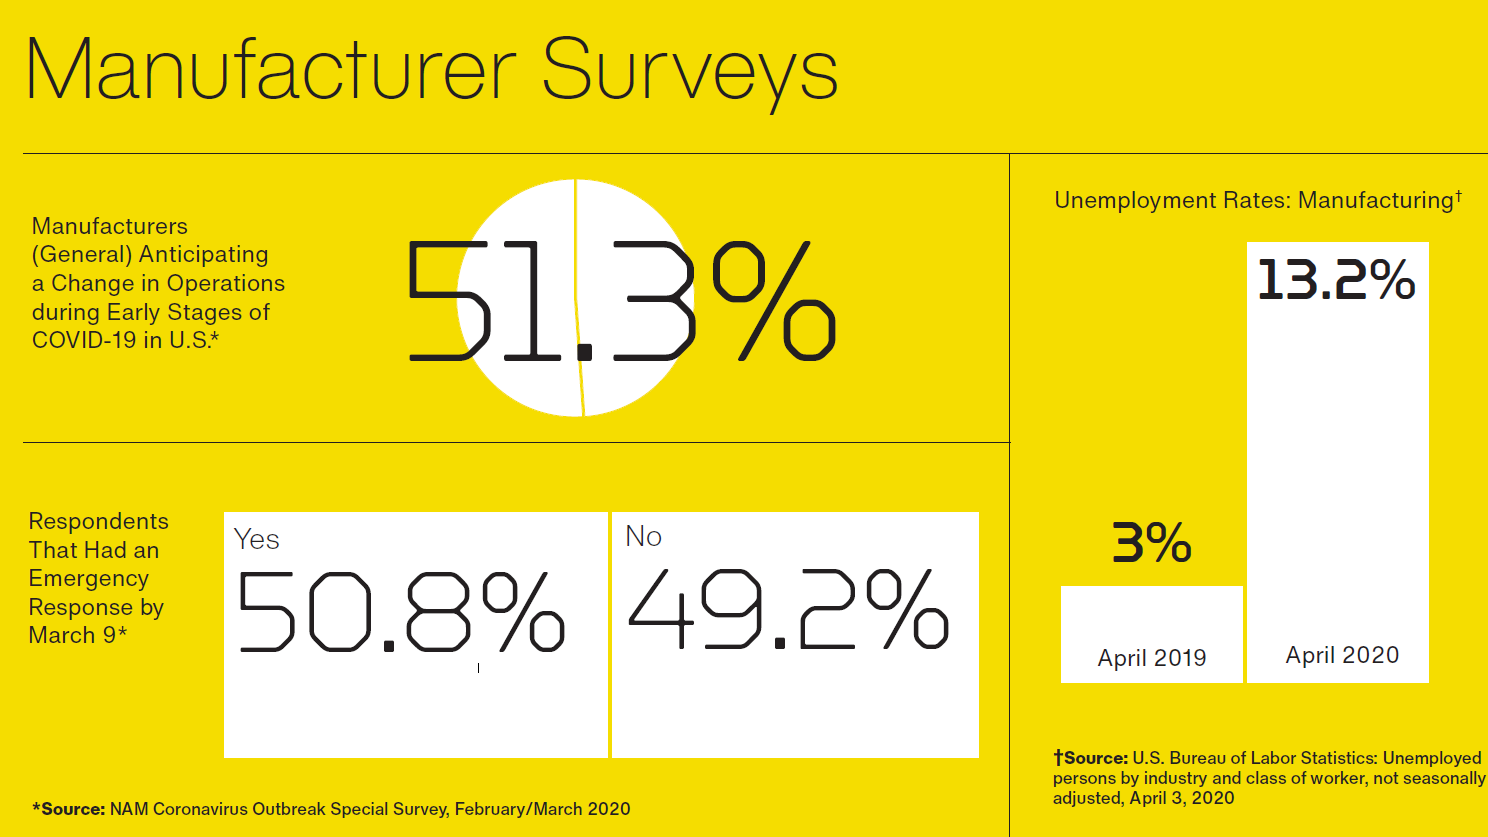 Top manufacturers report statistics